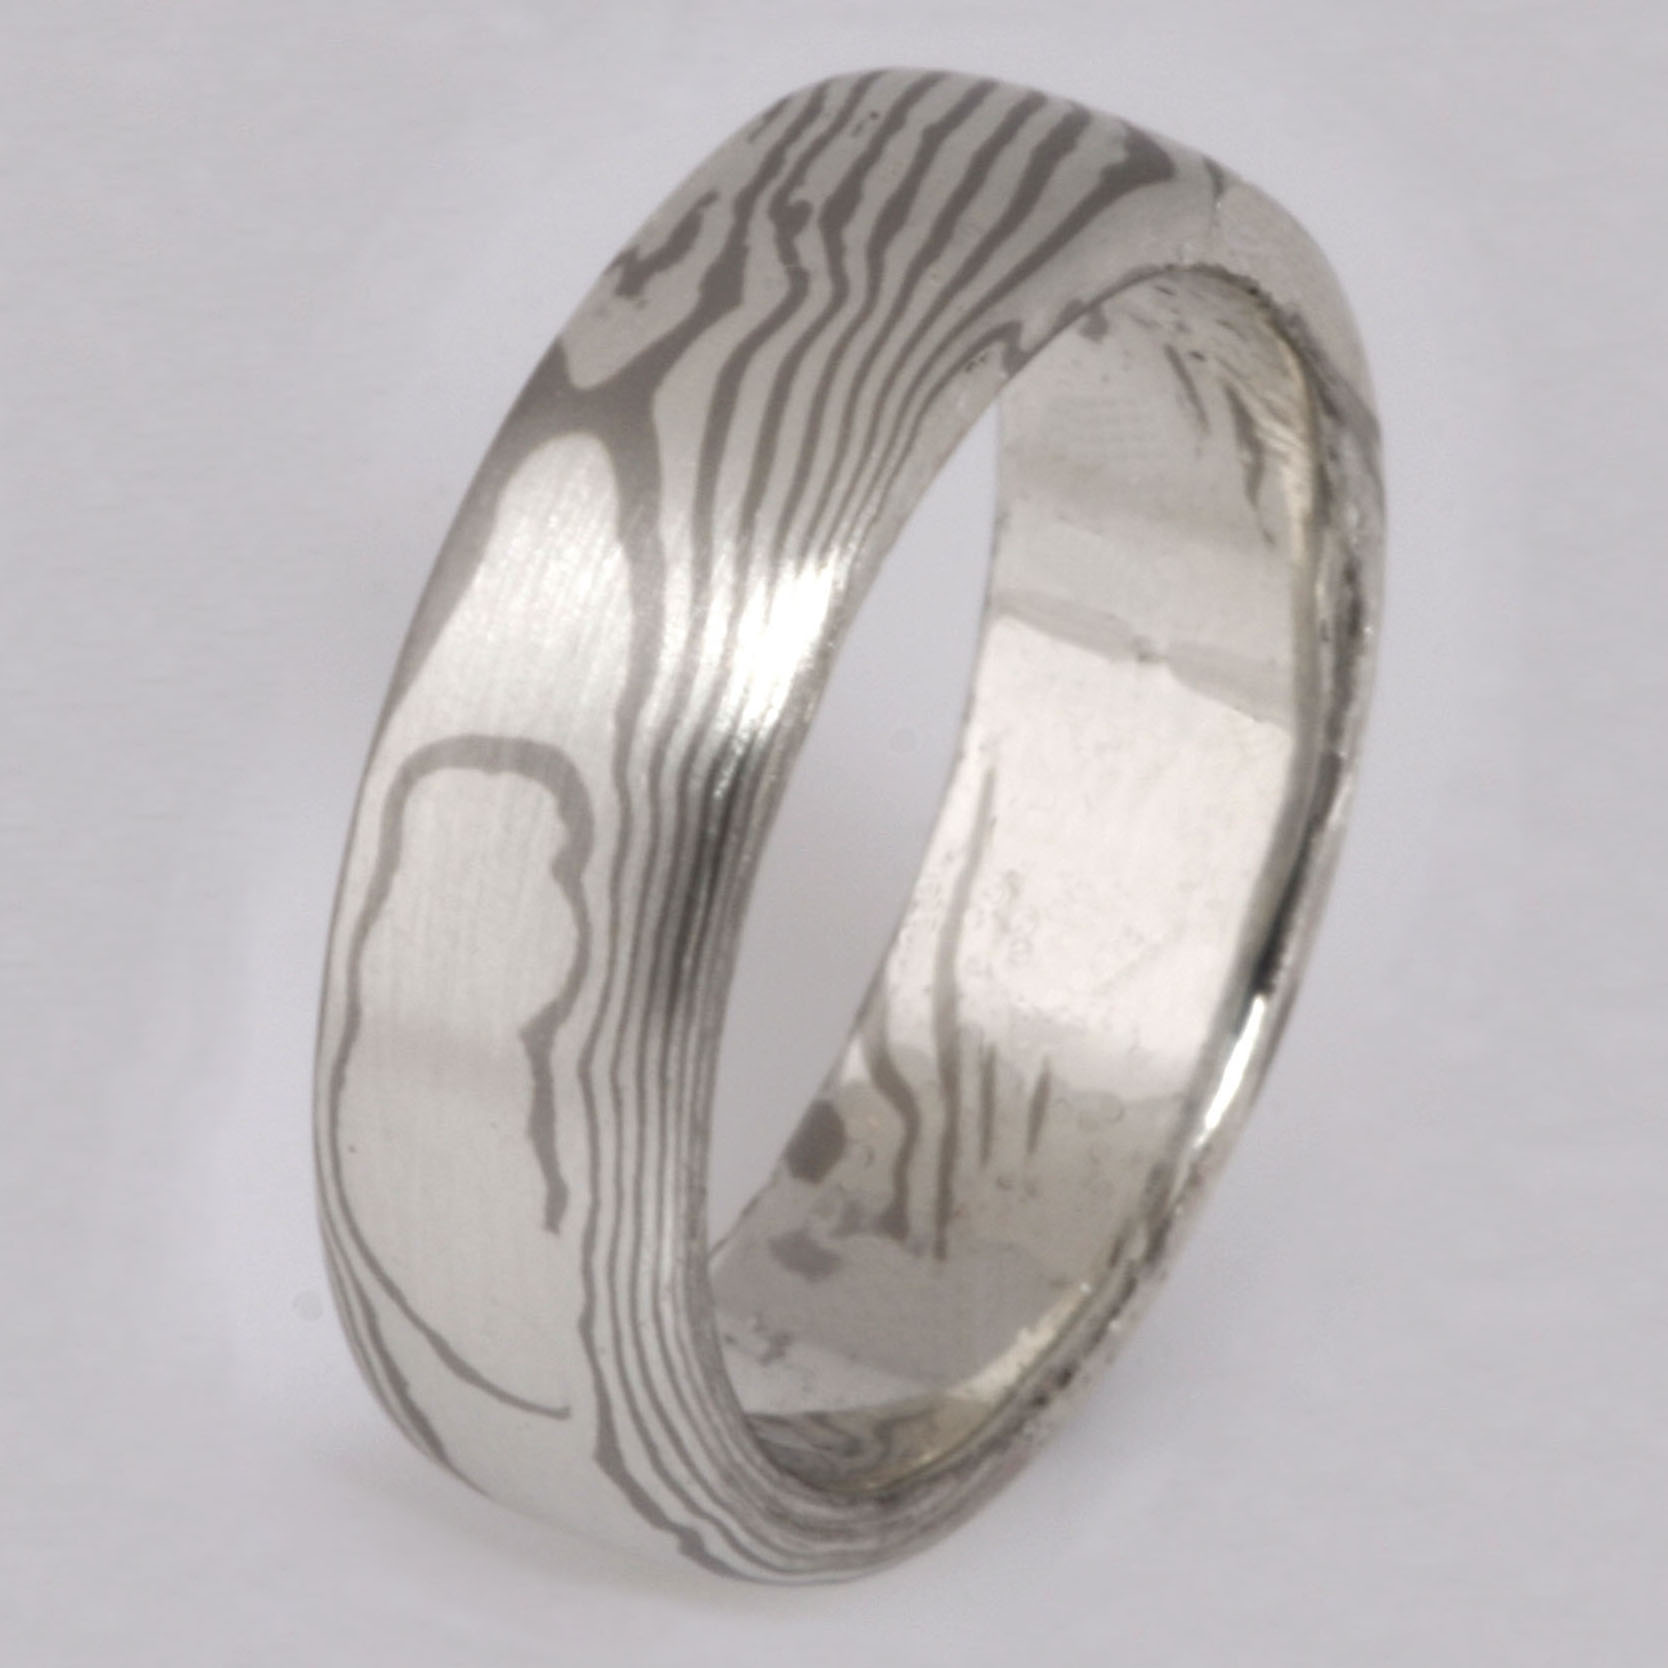 Handmade gents Mokume Gane 18ct white gold and sterling silver wedding ring